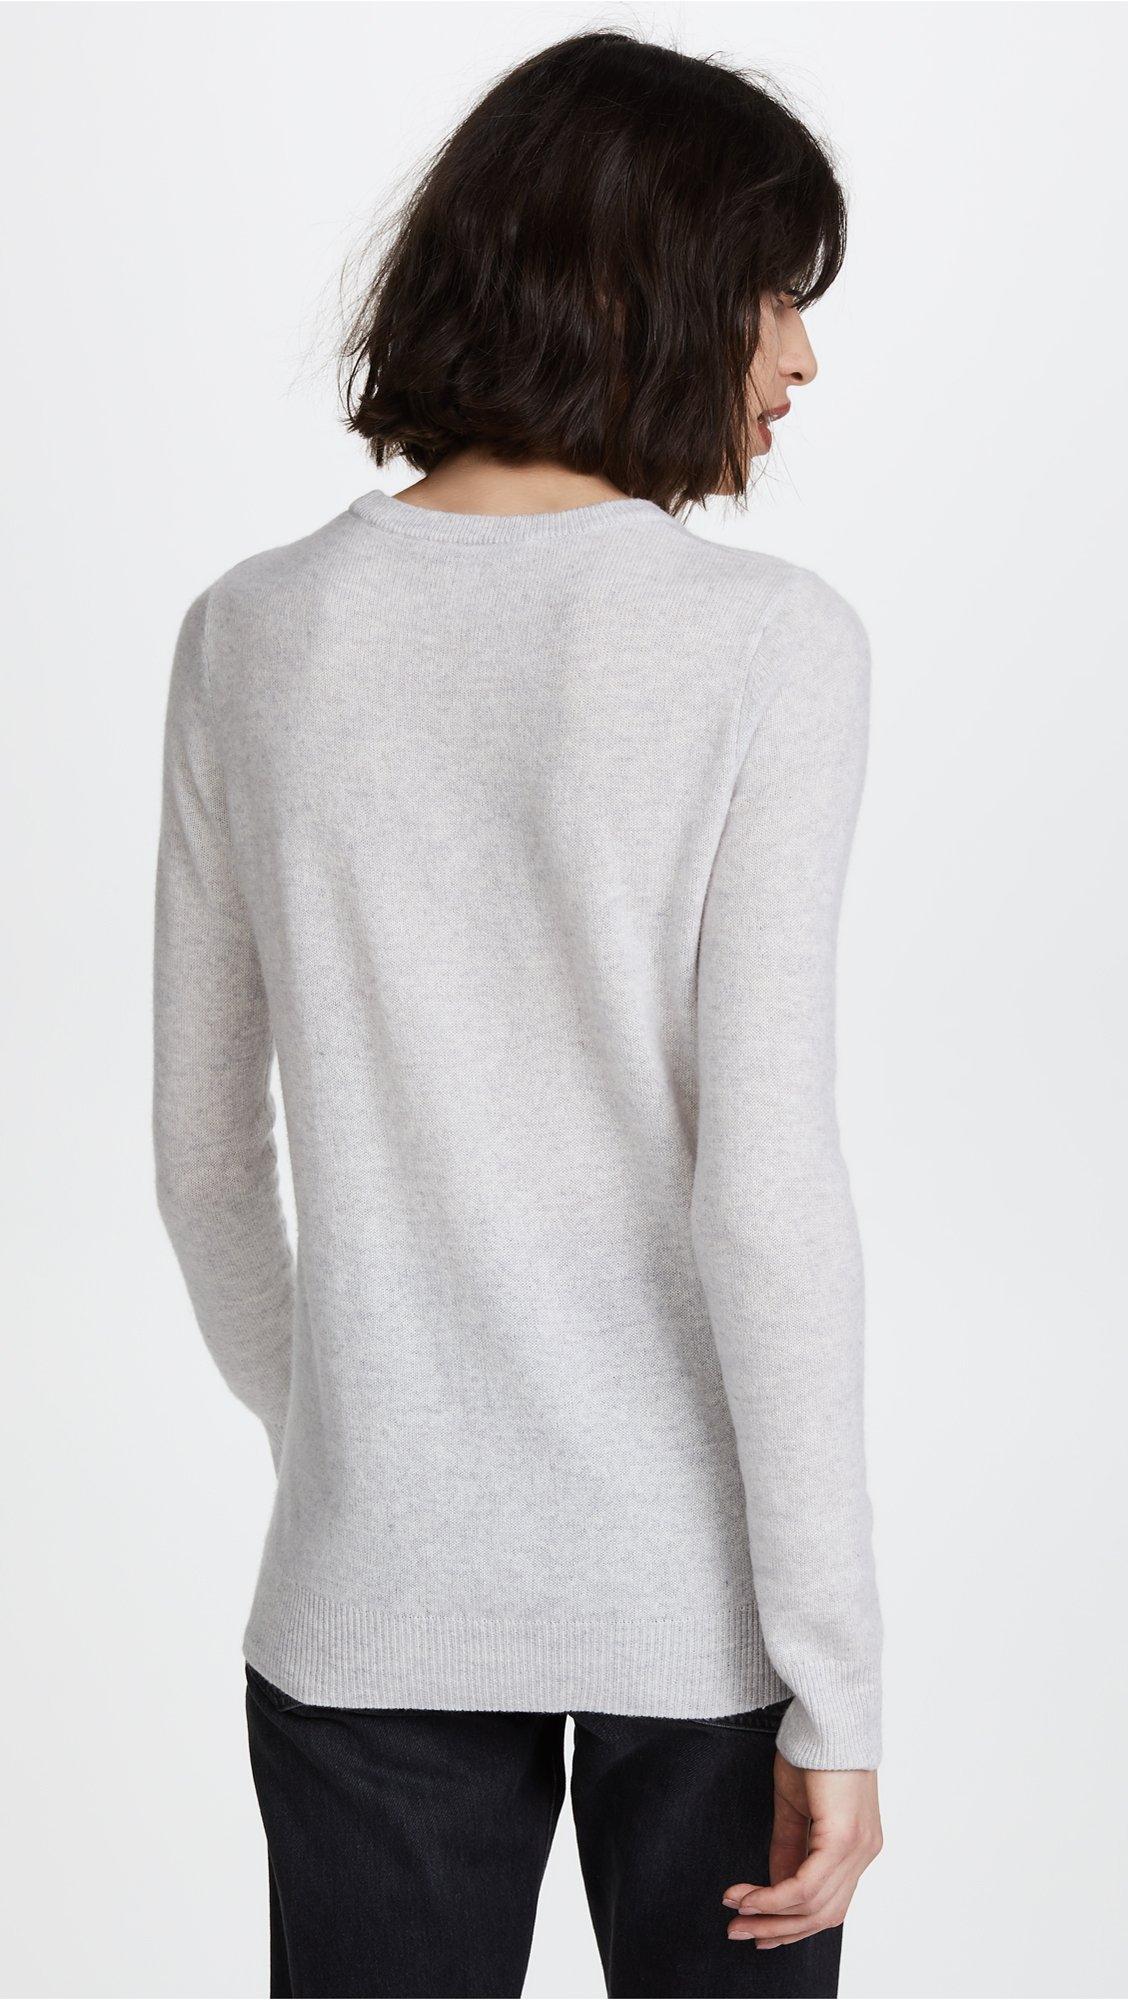 Autumn Cashmere Women's Intarsia Cashmere Sweater, Sleet/Navy Combo, X-Small by Autumn Cashmere (Image #3)